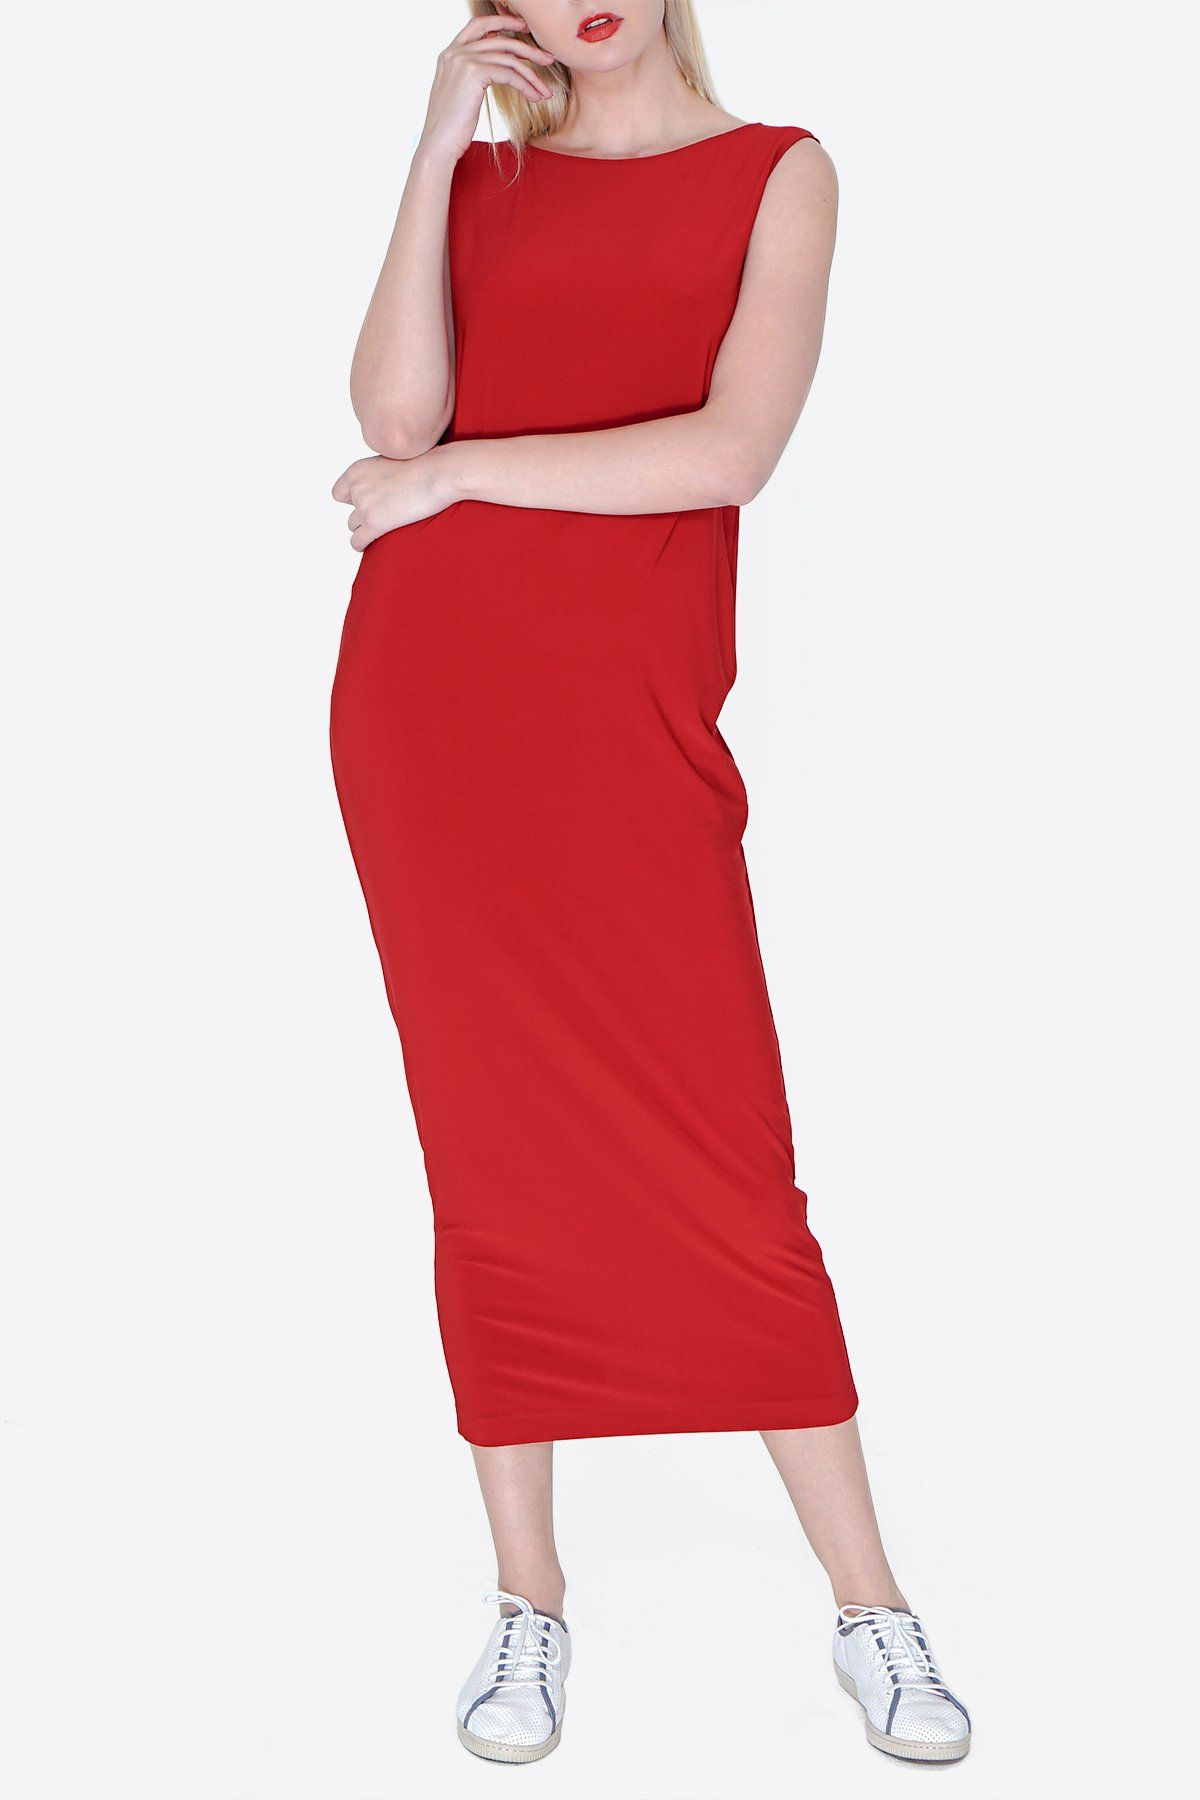 3d786e8b6a MIDI SHIFT DRESS red. Our latest addition to the SHIFT DRESS FAMILY. First  we had the SHORT version... Next we had the LONG version.